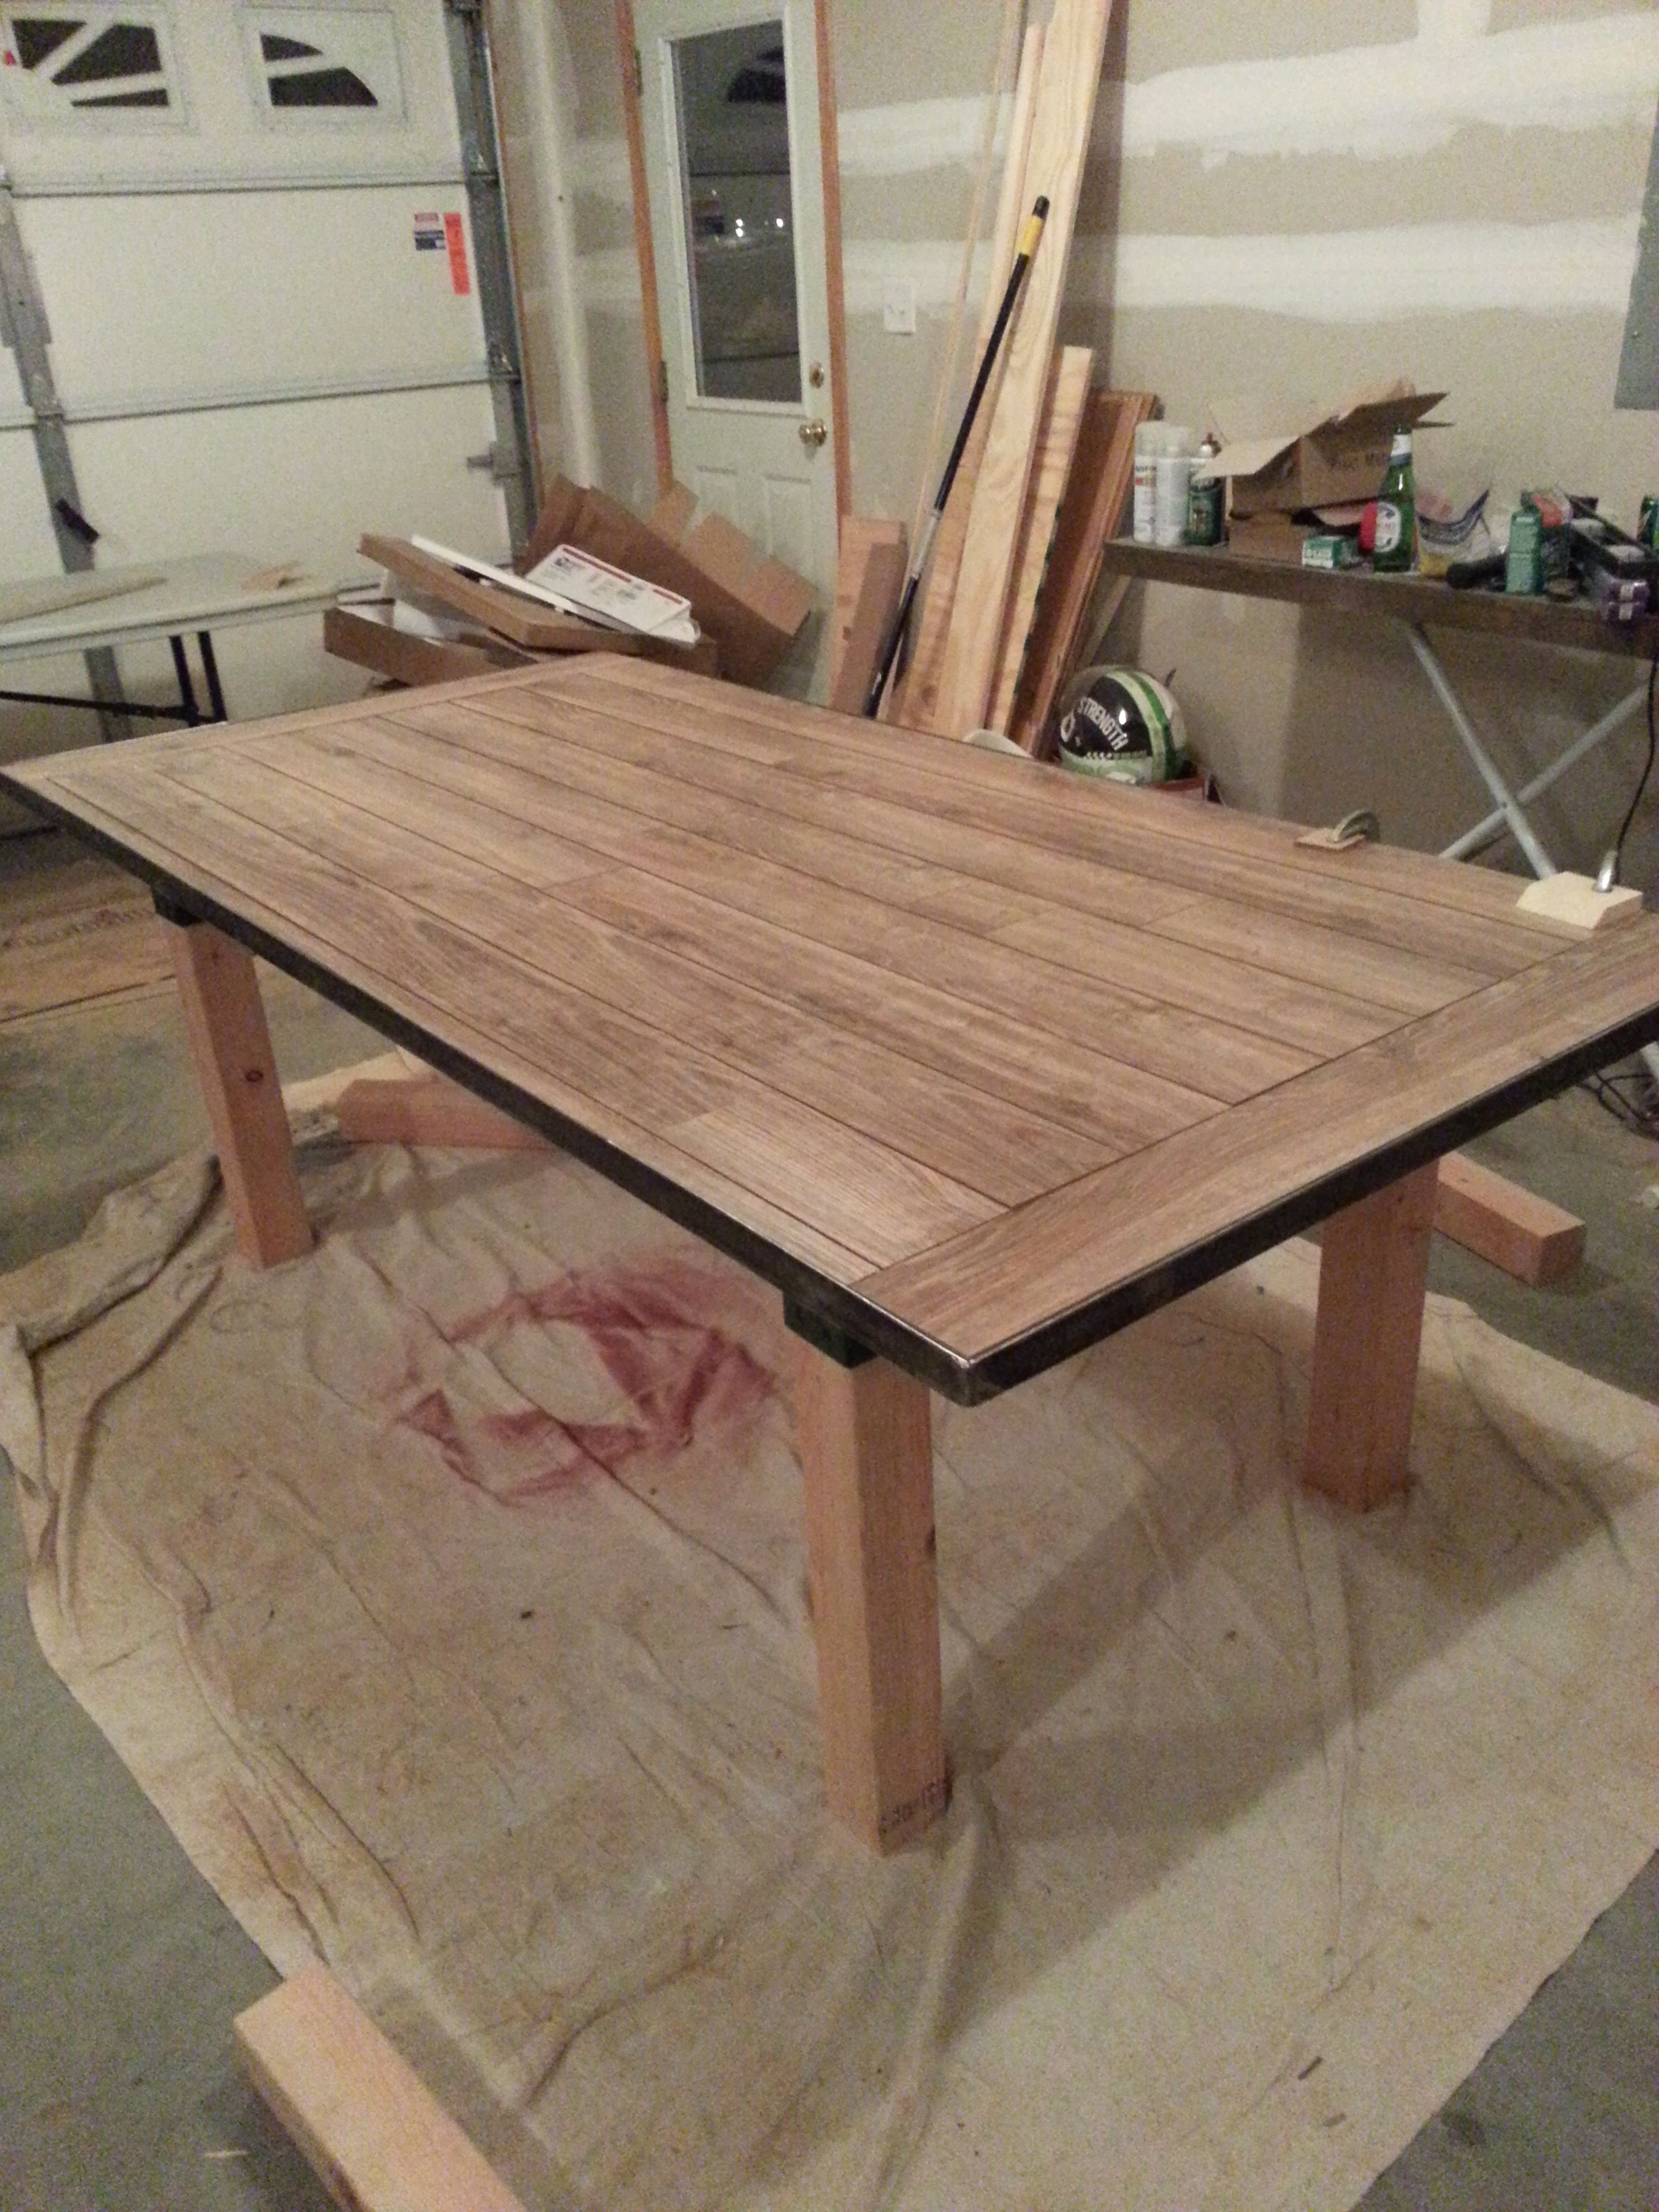 Laminate Flooring As The Table Top Within A Steel Frame